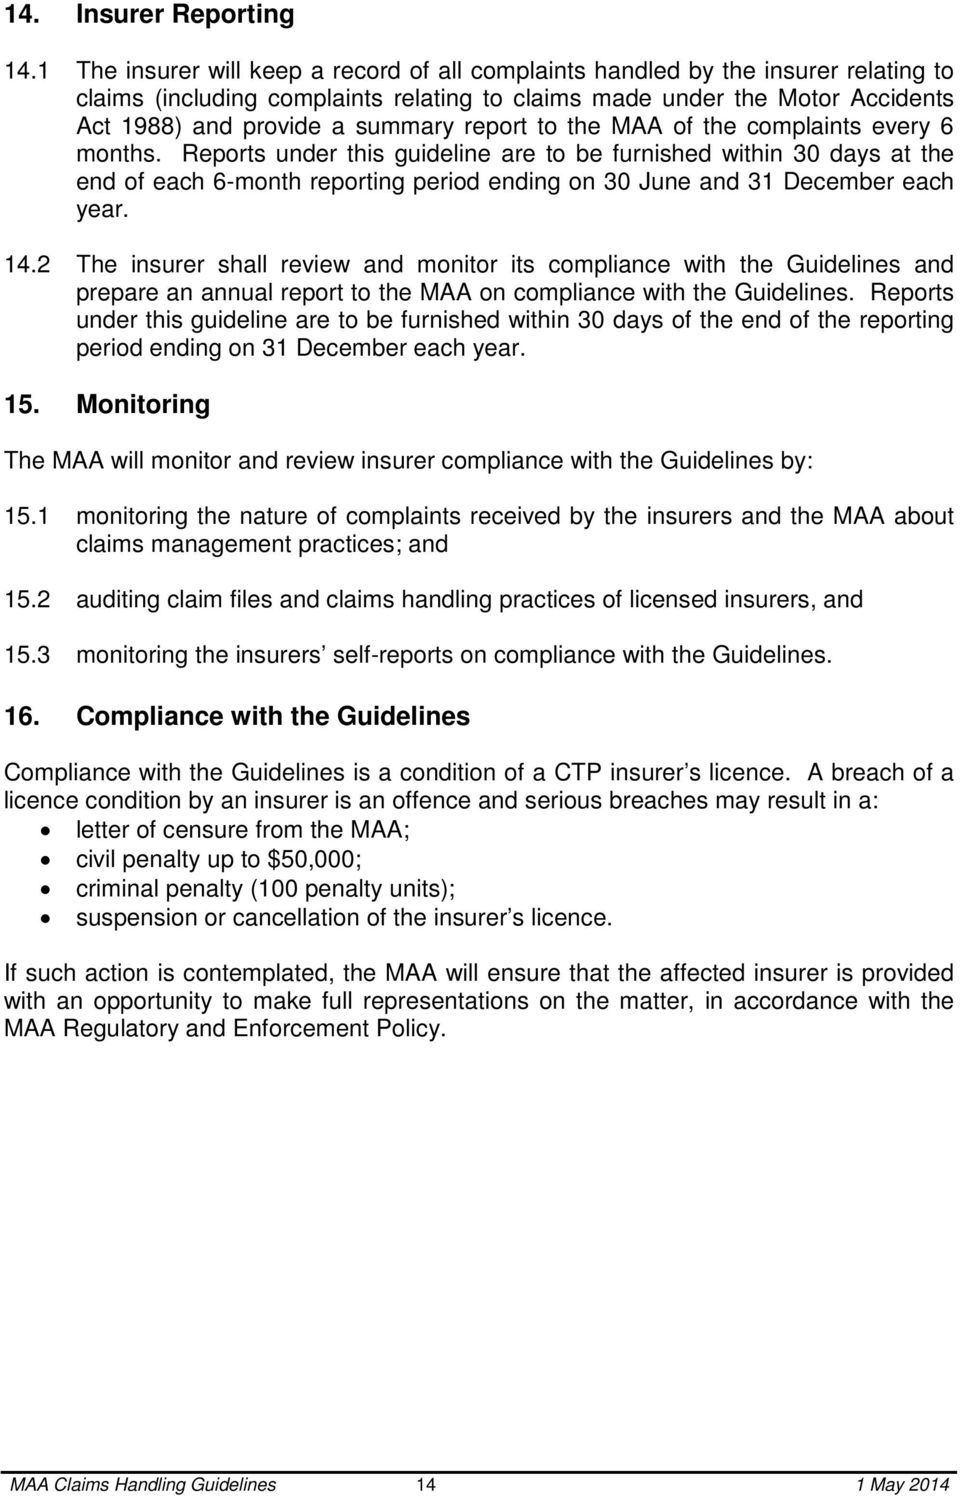 report to the MAA of the complaints every 6 months.